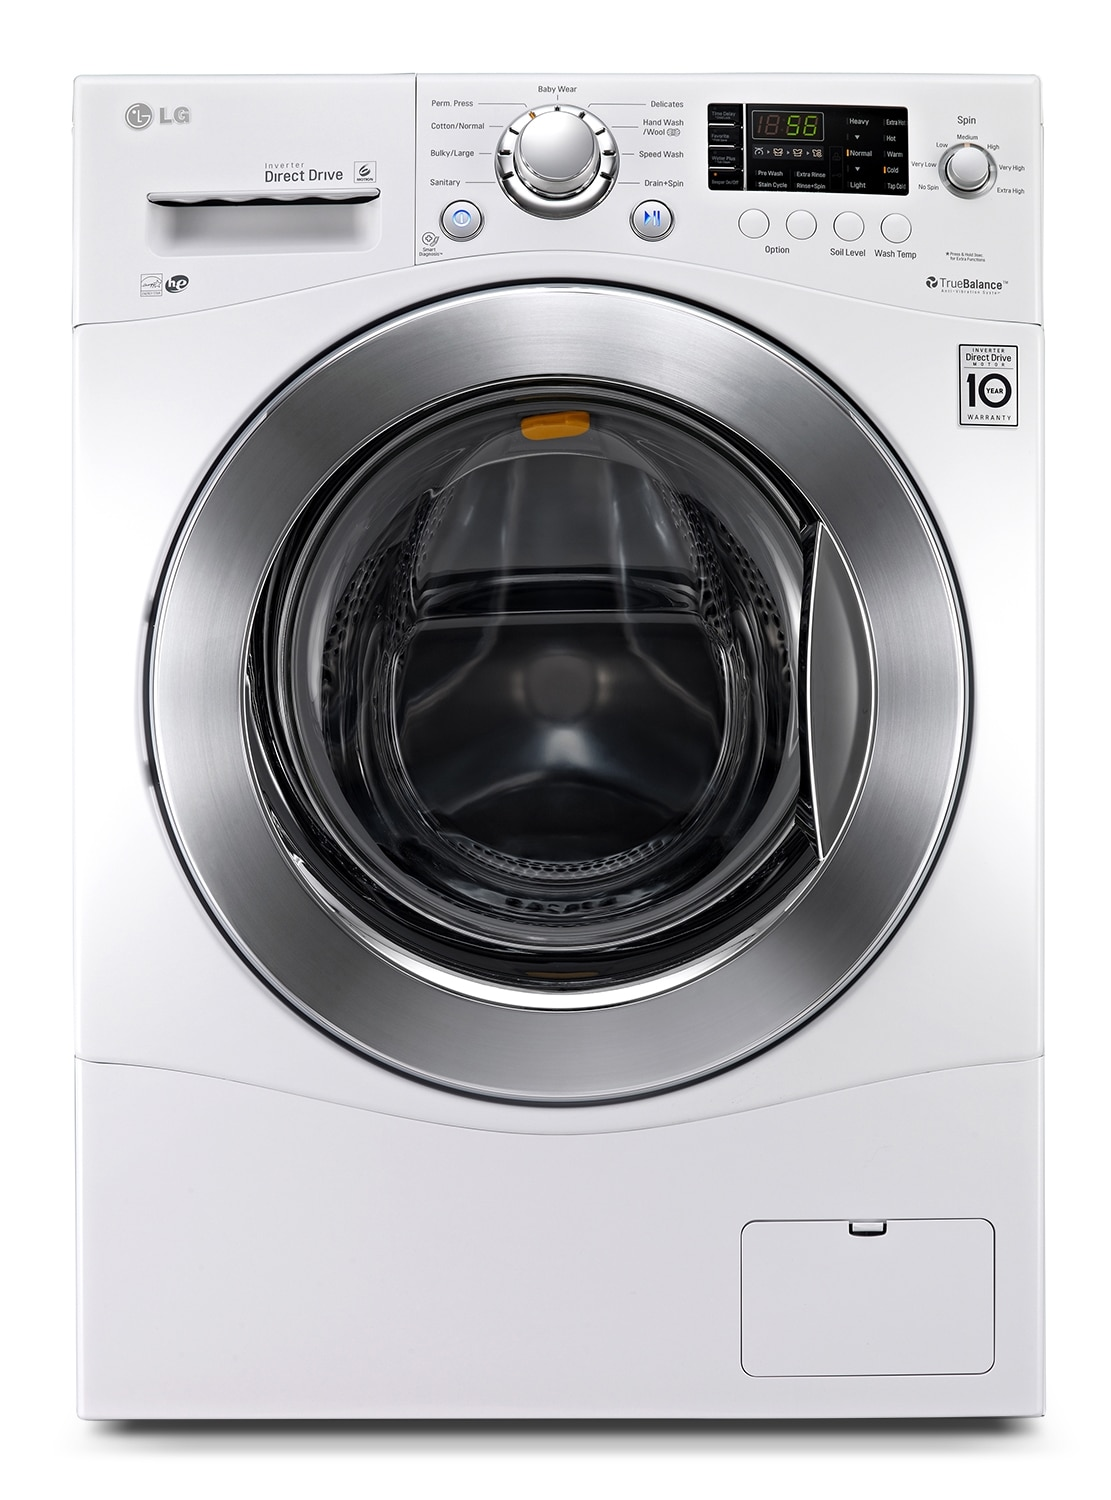 Washers and Dryers - LG Appliances White Front-Load Washer (2.6 Cu. Ft.) - WM1377HW